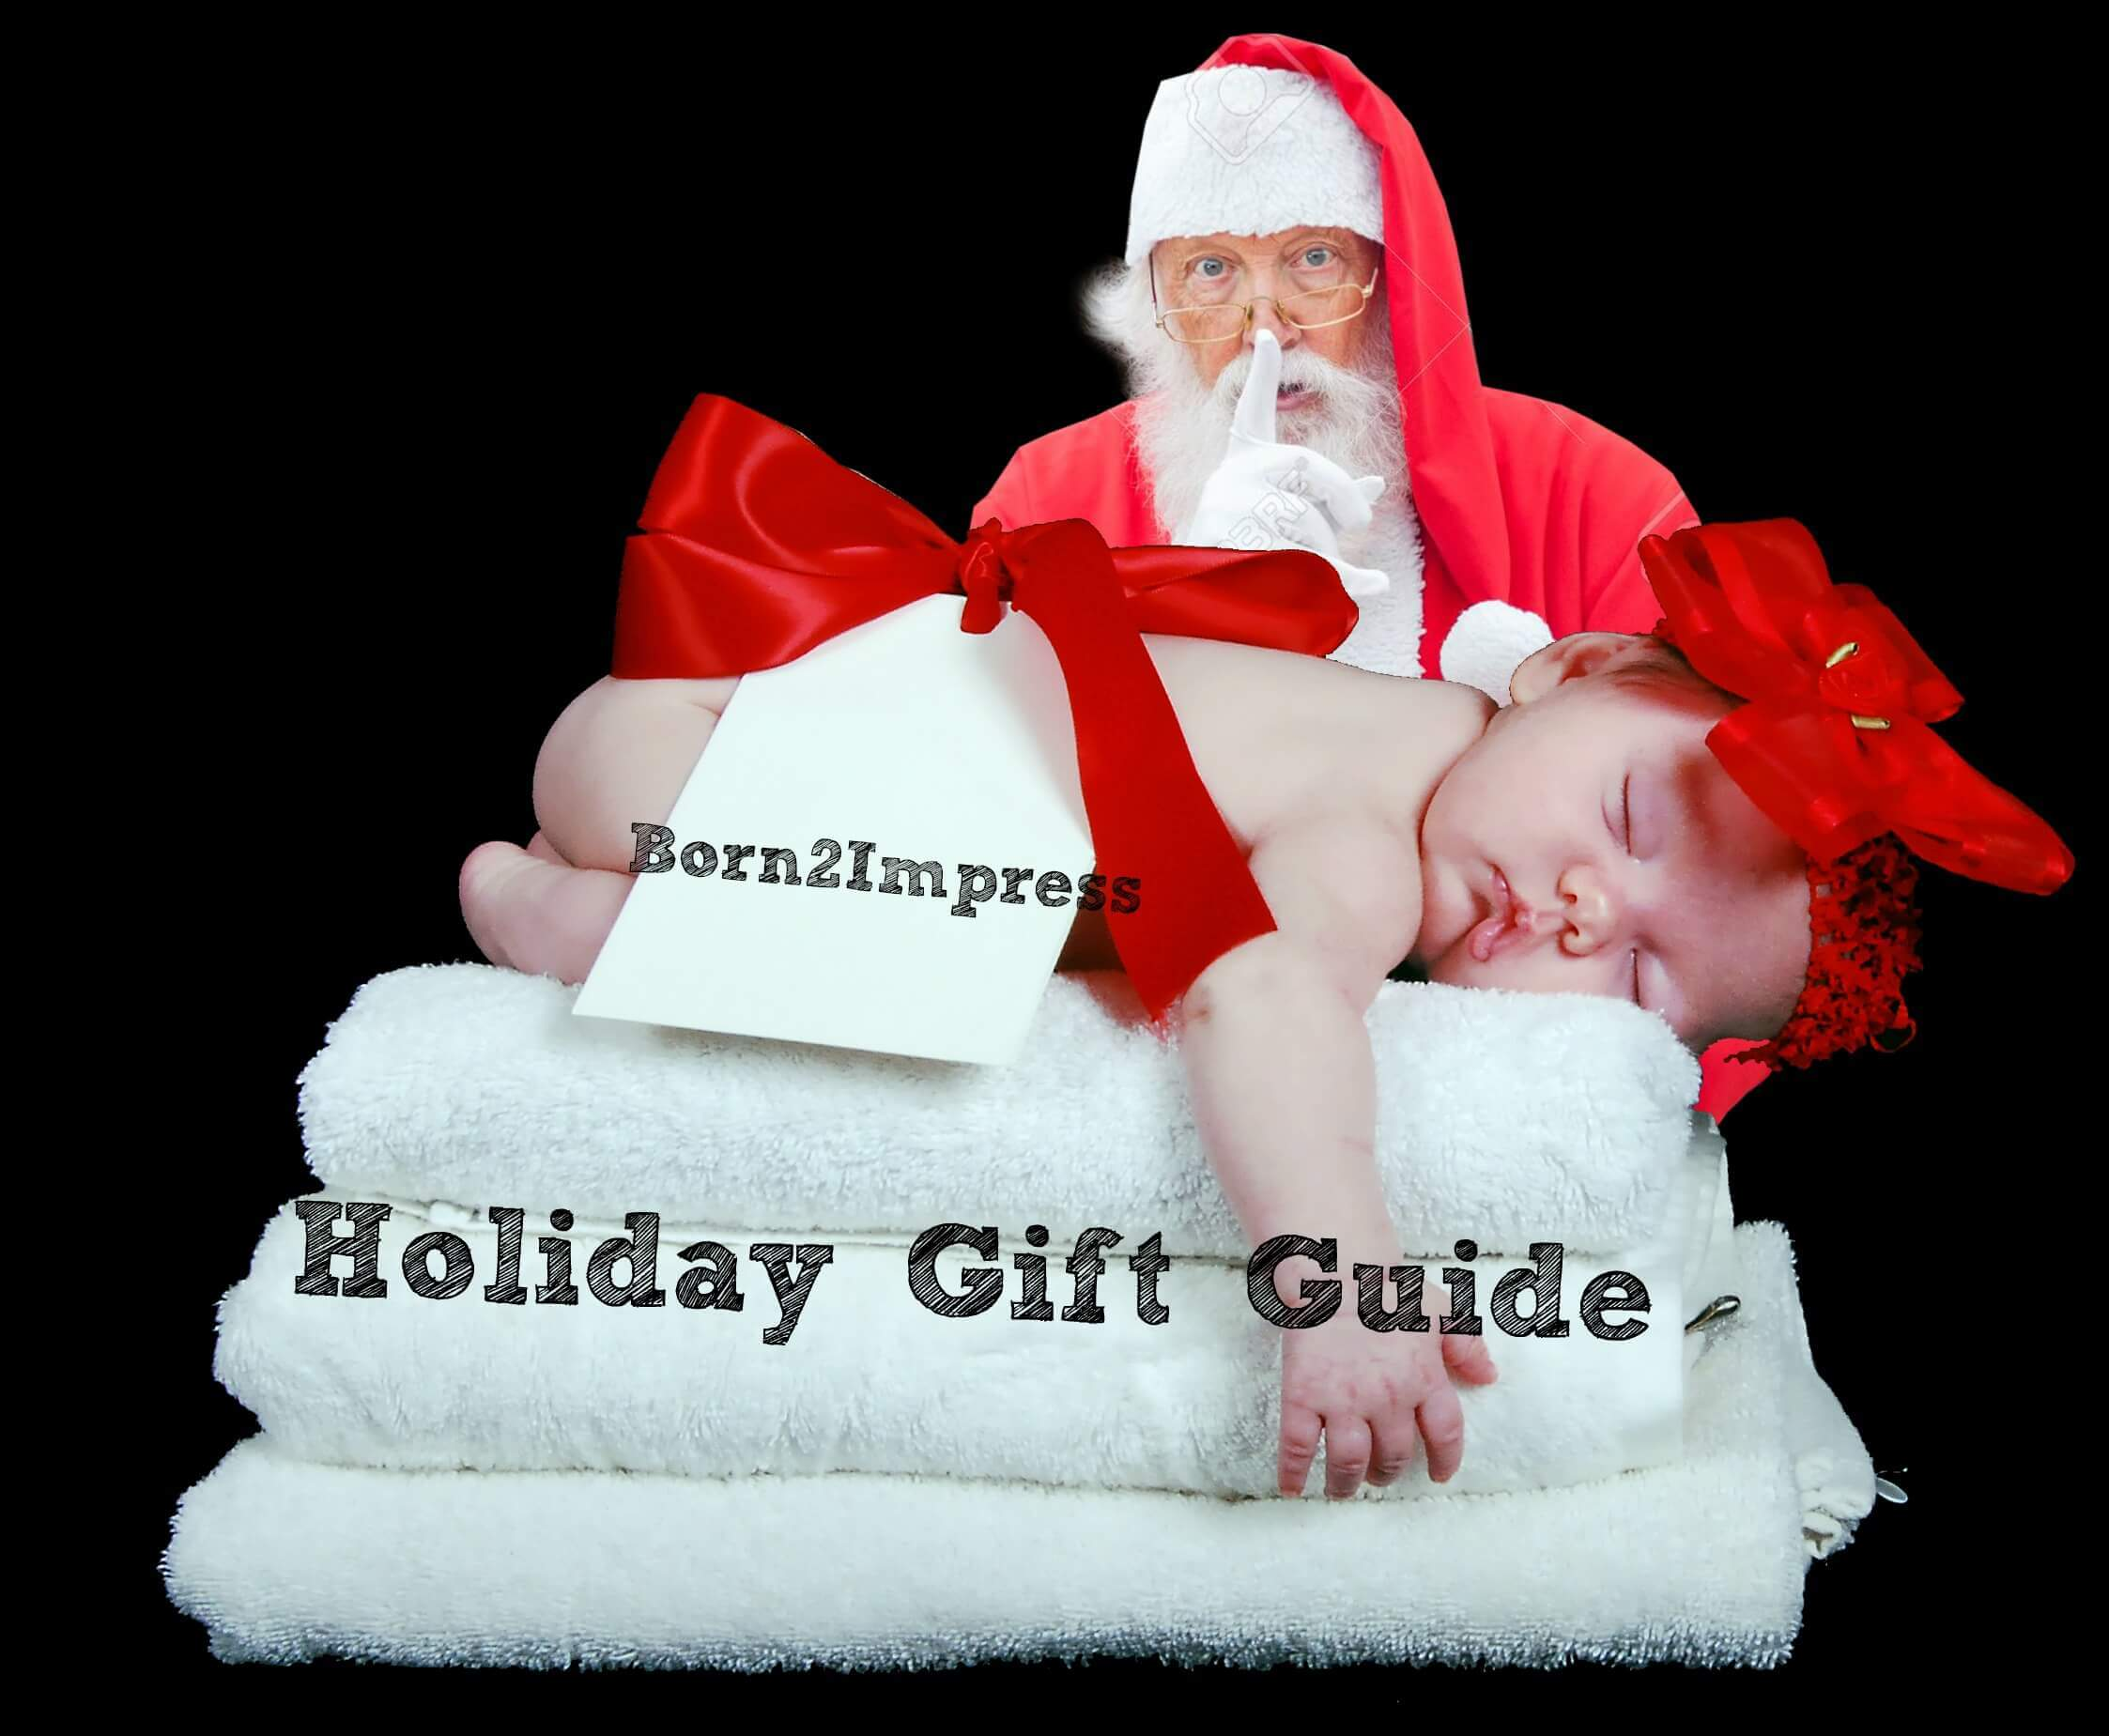 Born 2 Impress Holidays Gift Guide is on the Works!